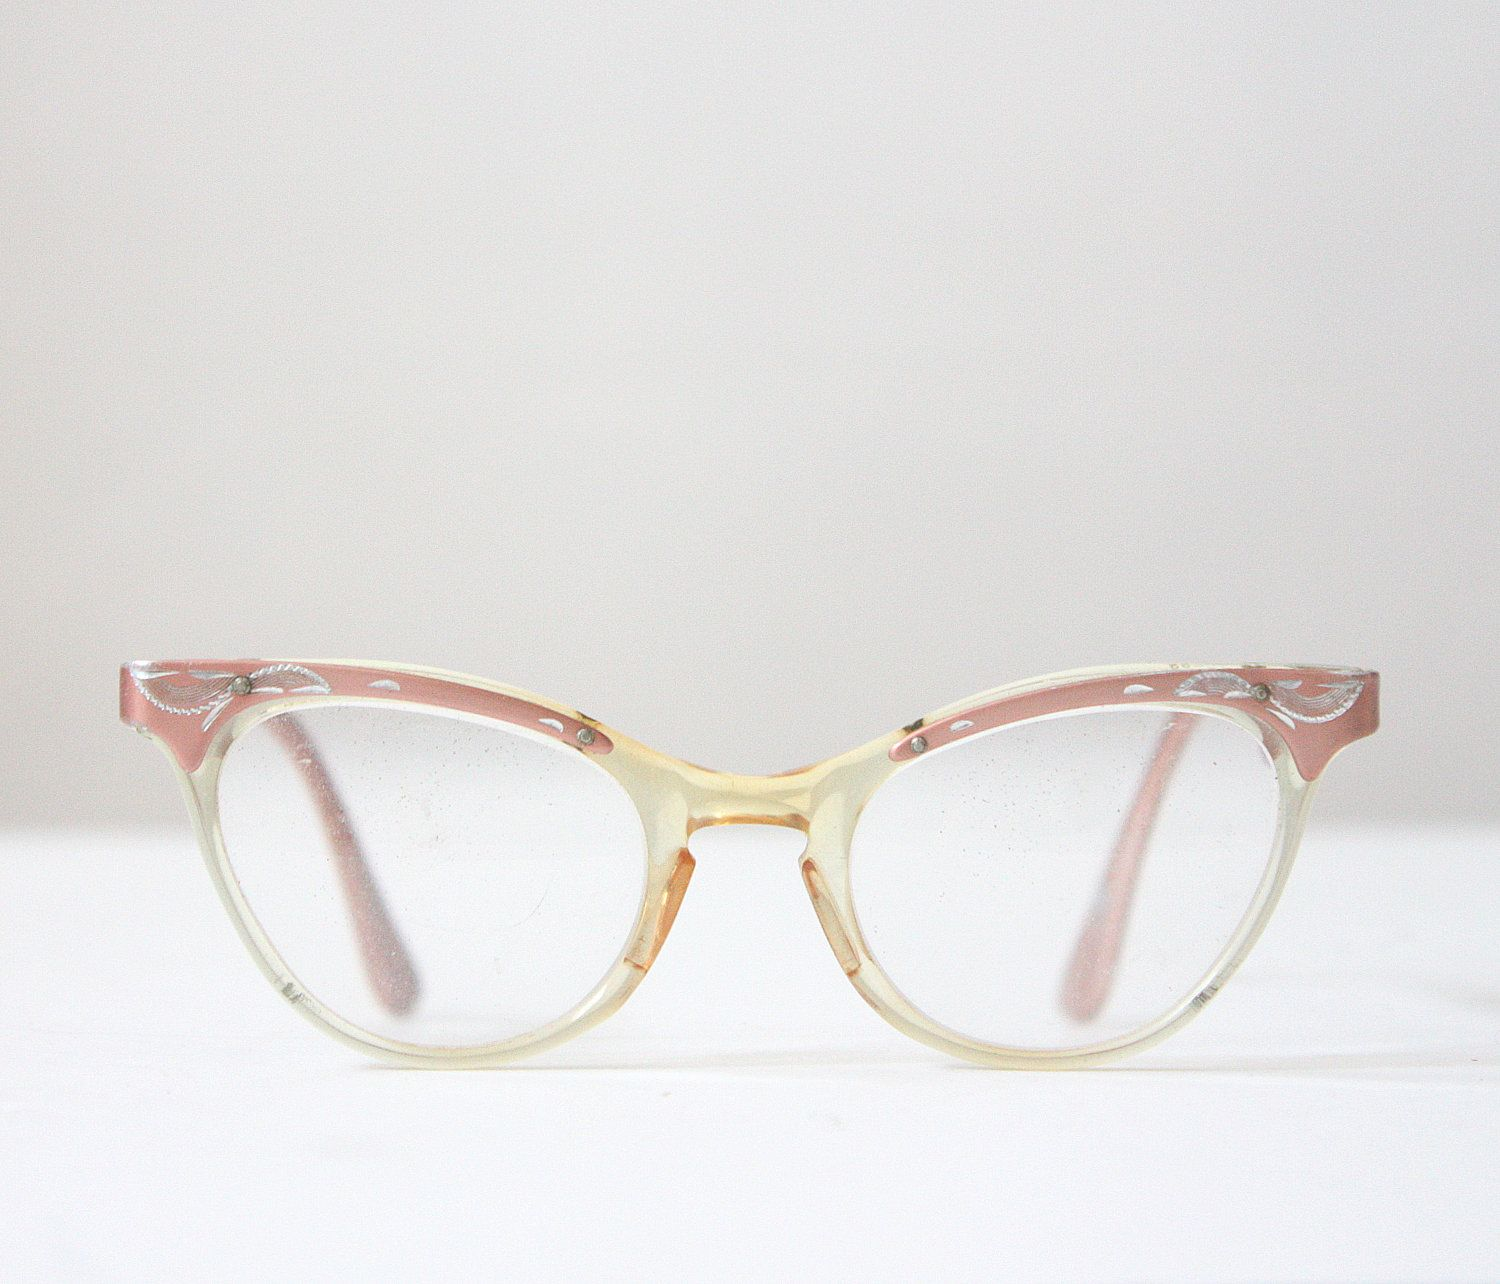 vintage pink glasses - 1950's pink etched glasses